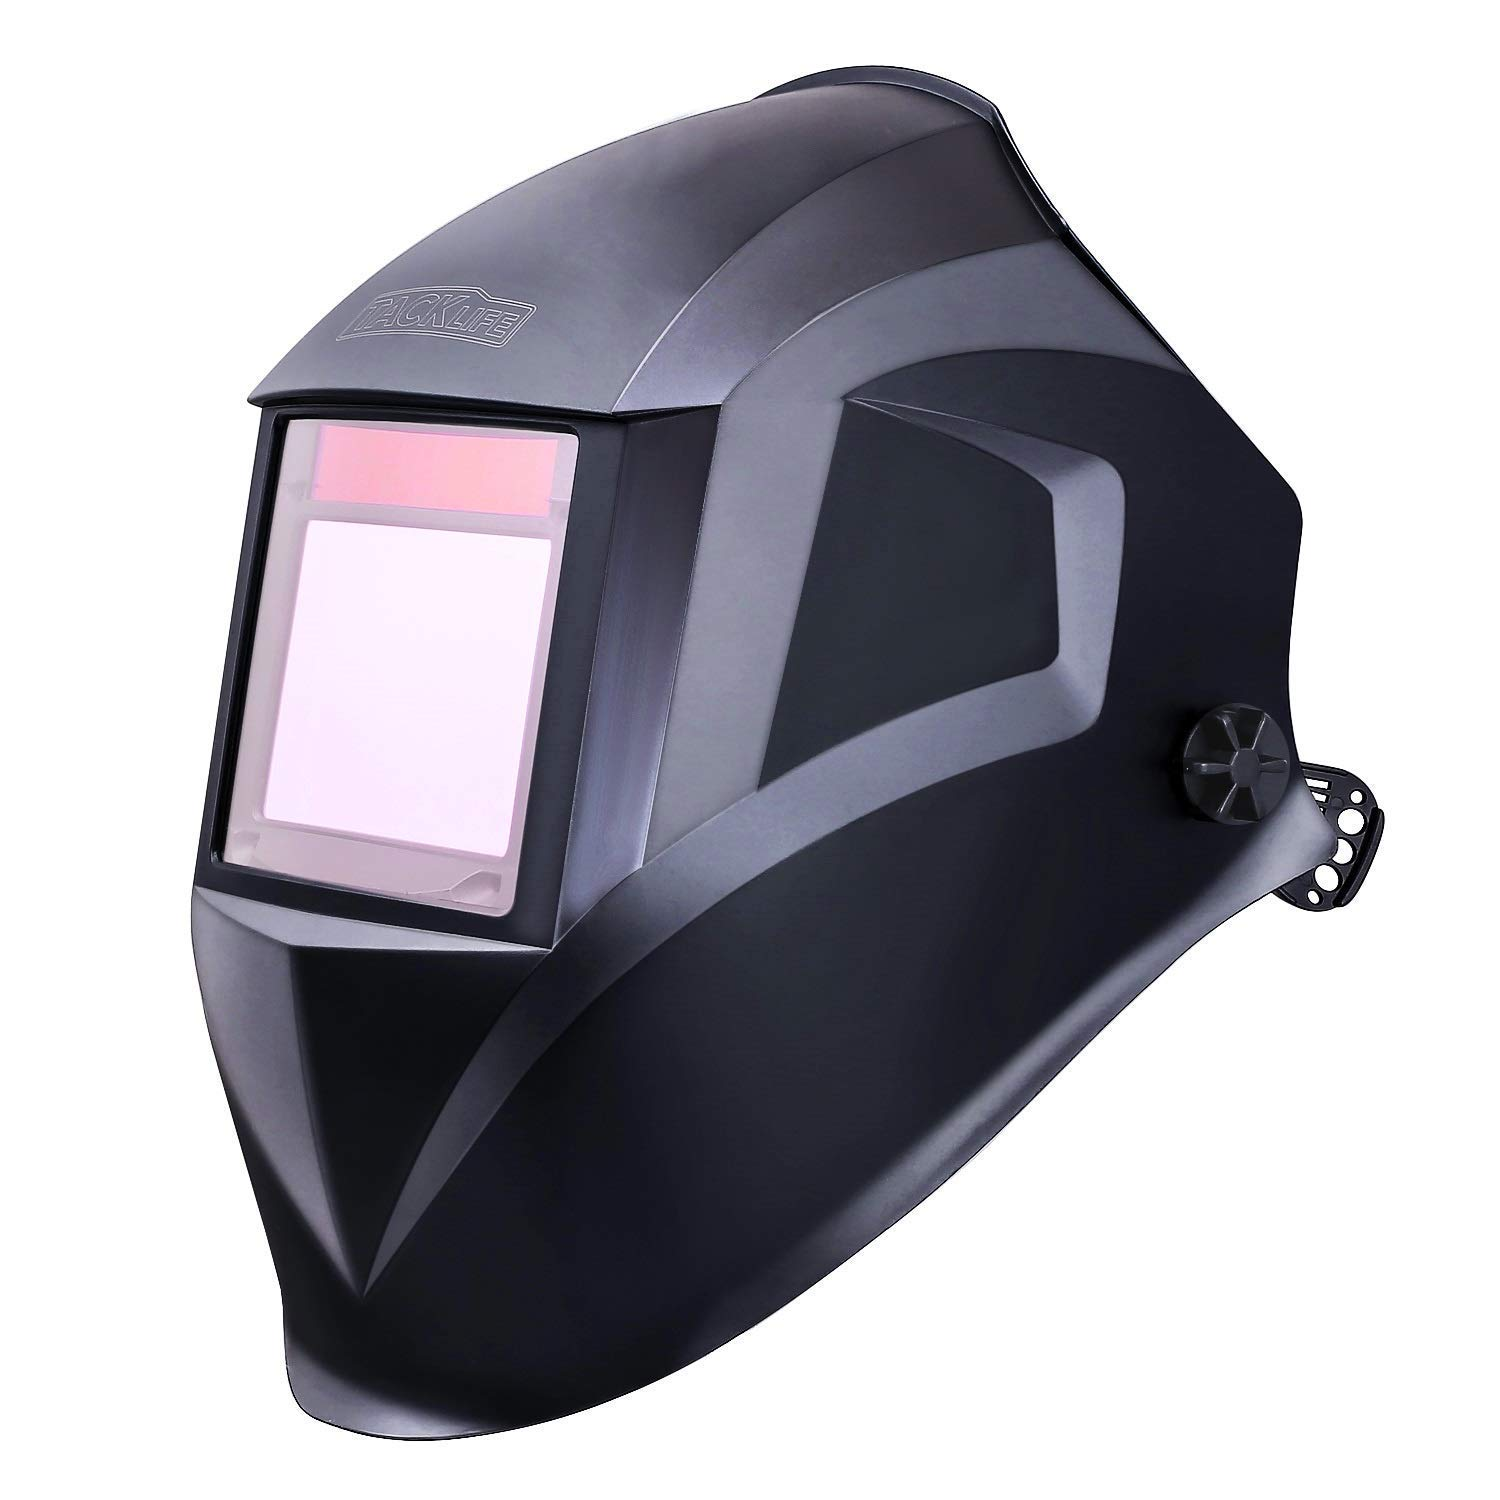 Auto Dark Welding Helmet that helps to reduce Fatigue wearing for long time